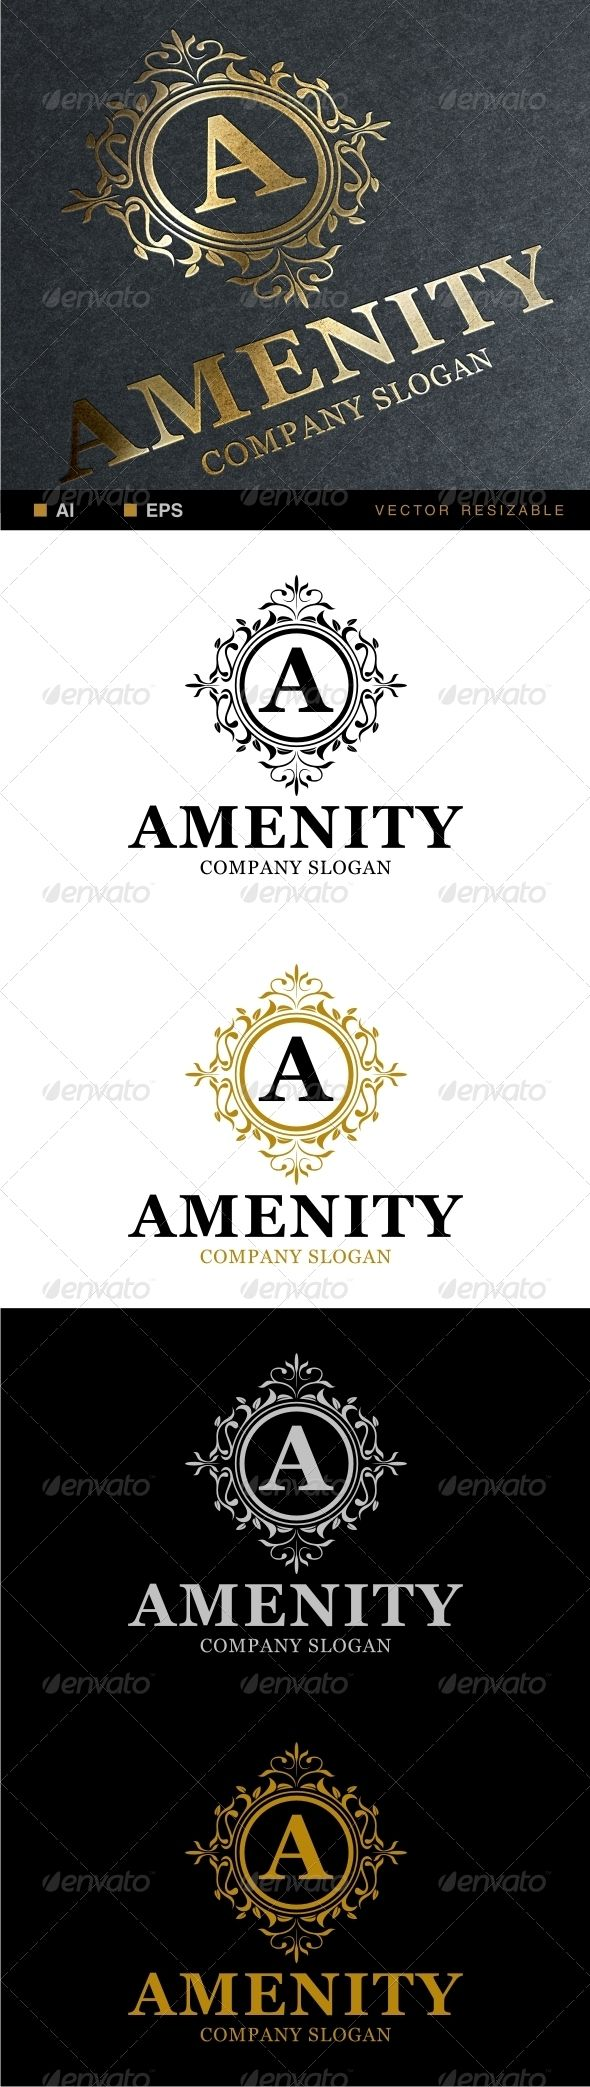 Amenity Logo  .This image is available on GraphicRiver. Easy to edit to your own company name with vector for highly resizable and printing. Including AI and EPS 10 with RGB and CMYK color mode. 100% vector (re-sizable). Free font used Georgia, you can download here fontzone /font-details/georgia  *mockup are for preview purpose only! GraphicRiver Created: 6 2 14 Graphics Files Included:   Vector EPS, AI Illustrator  Layered:Yes Minimum Adobe CS Version:   CS Resolution:Resizable